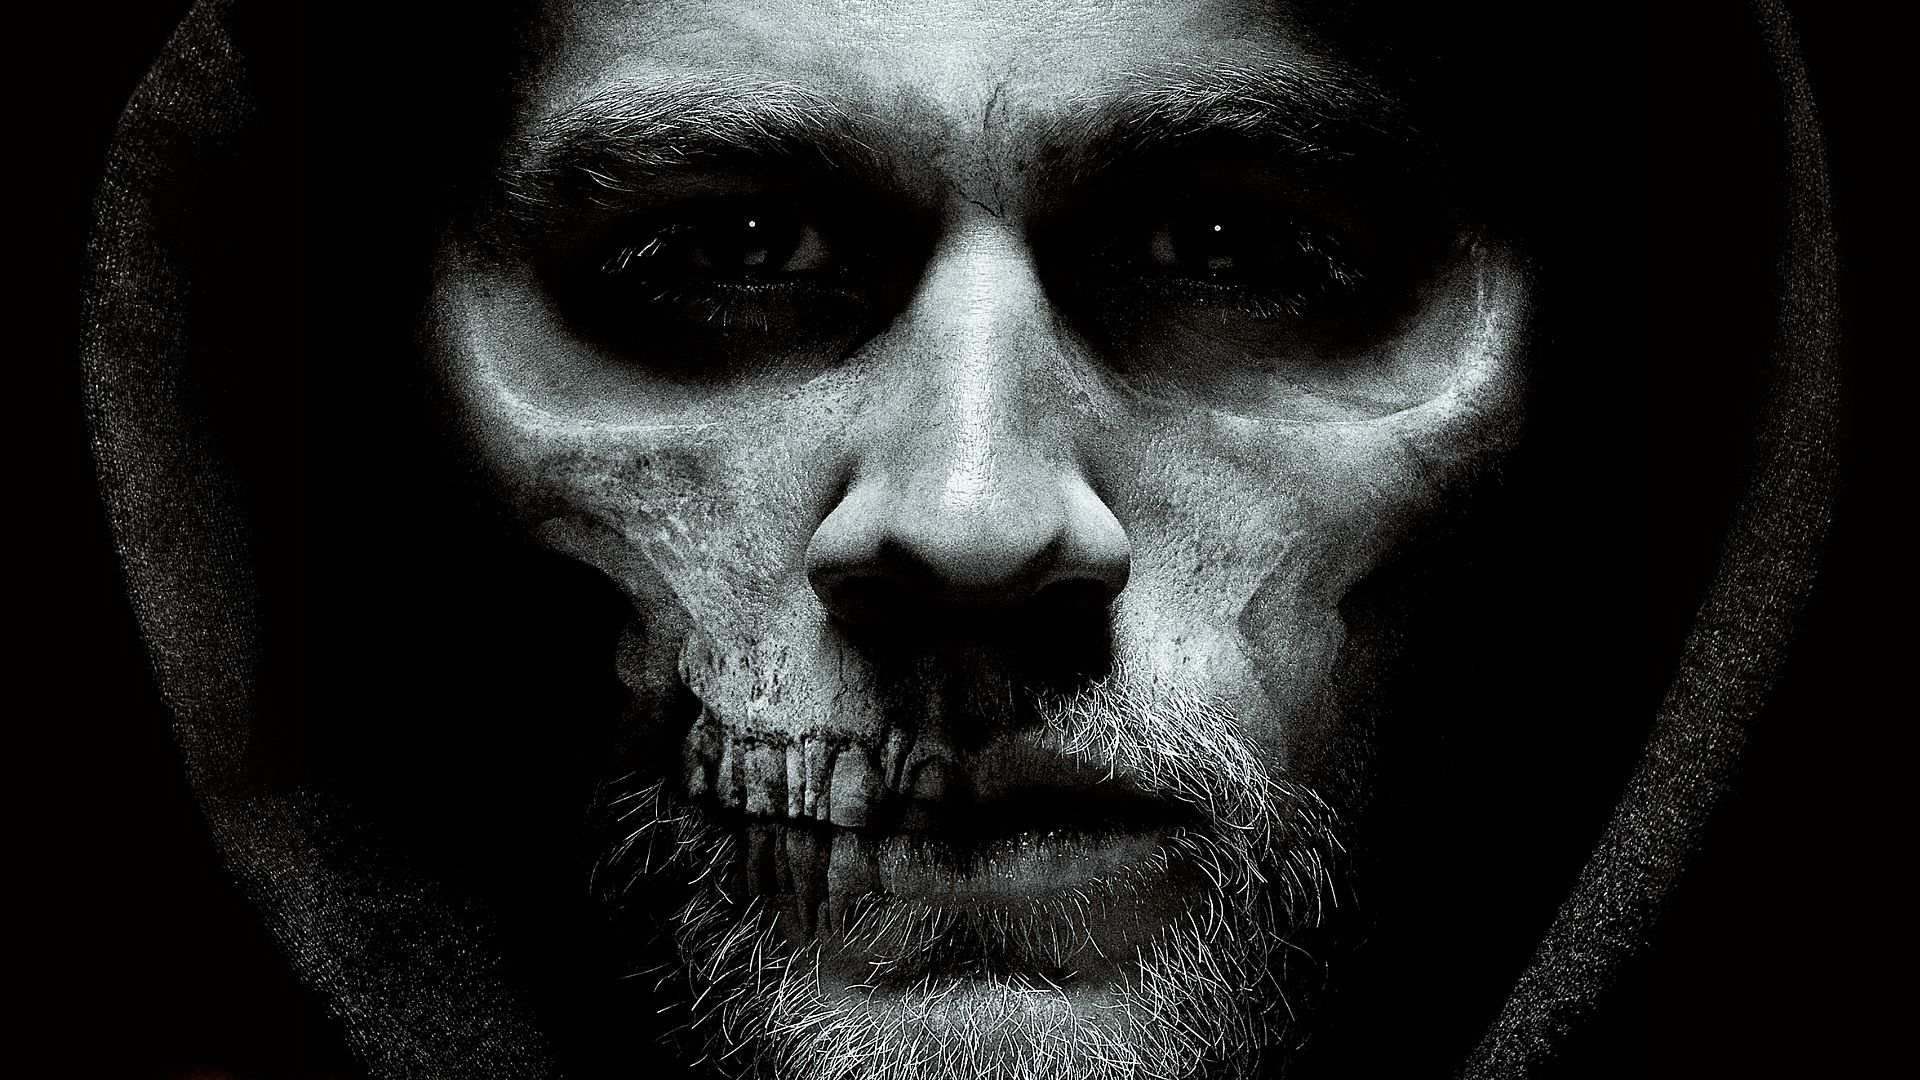 Sons Of Anarchy Hd Wallpaper Background Image 1920x1080 Id